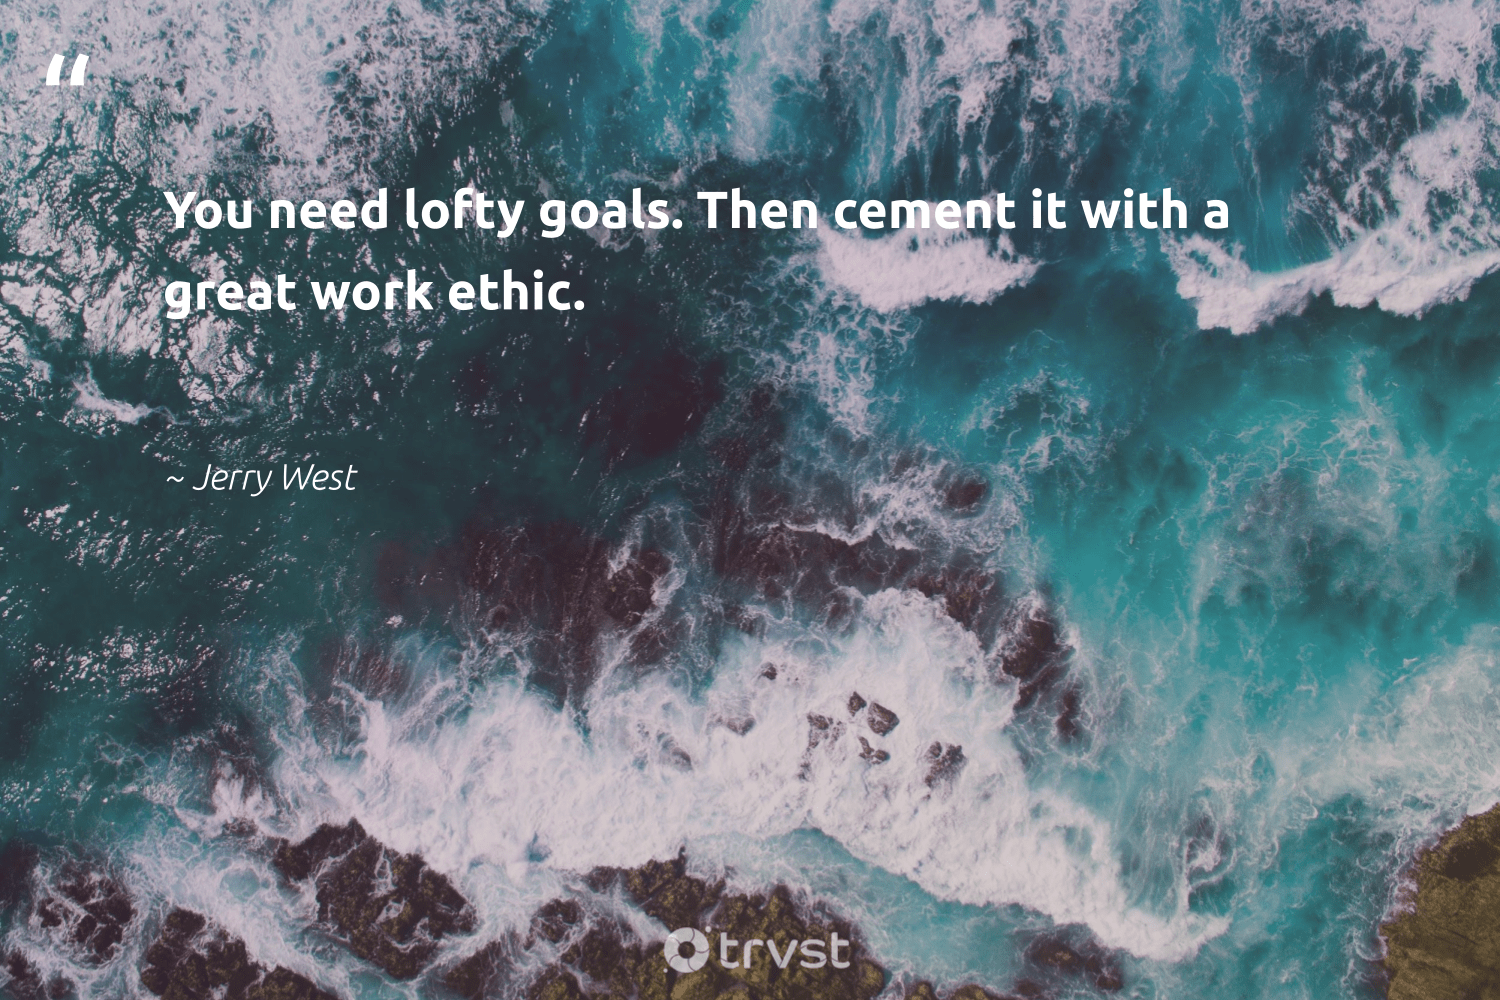 """You need lofty goals. Then cement it with a great work ethic.""  - Jerry West #trvst #quotes #goals #positivity #nevergiveup #begreat #thinkgreen #mindfulness #futureofwork #changemakers #dogood #motivation"